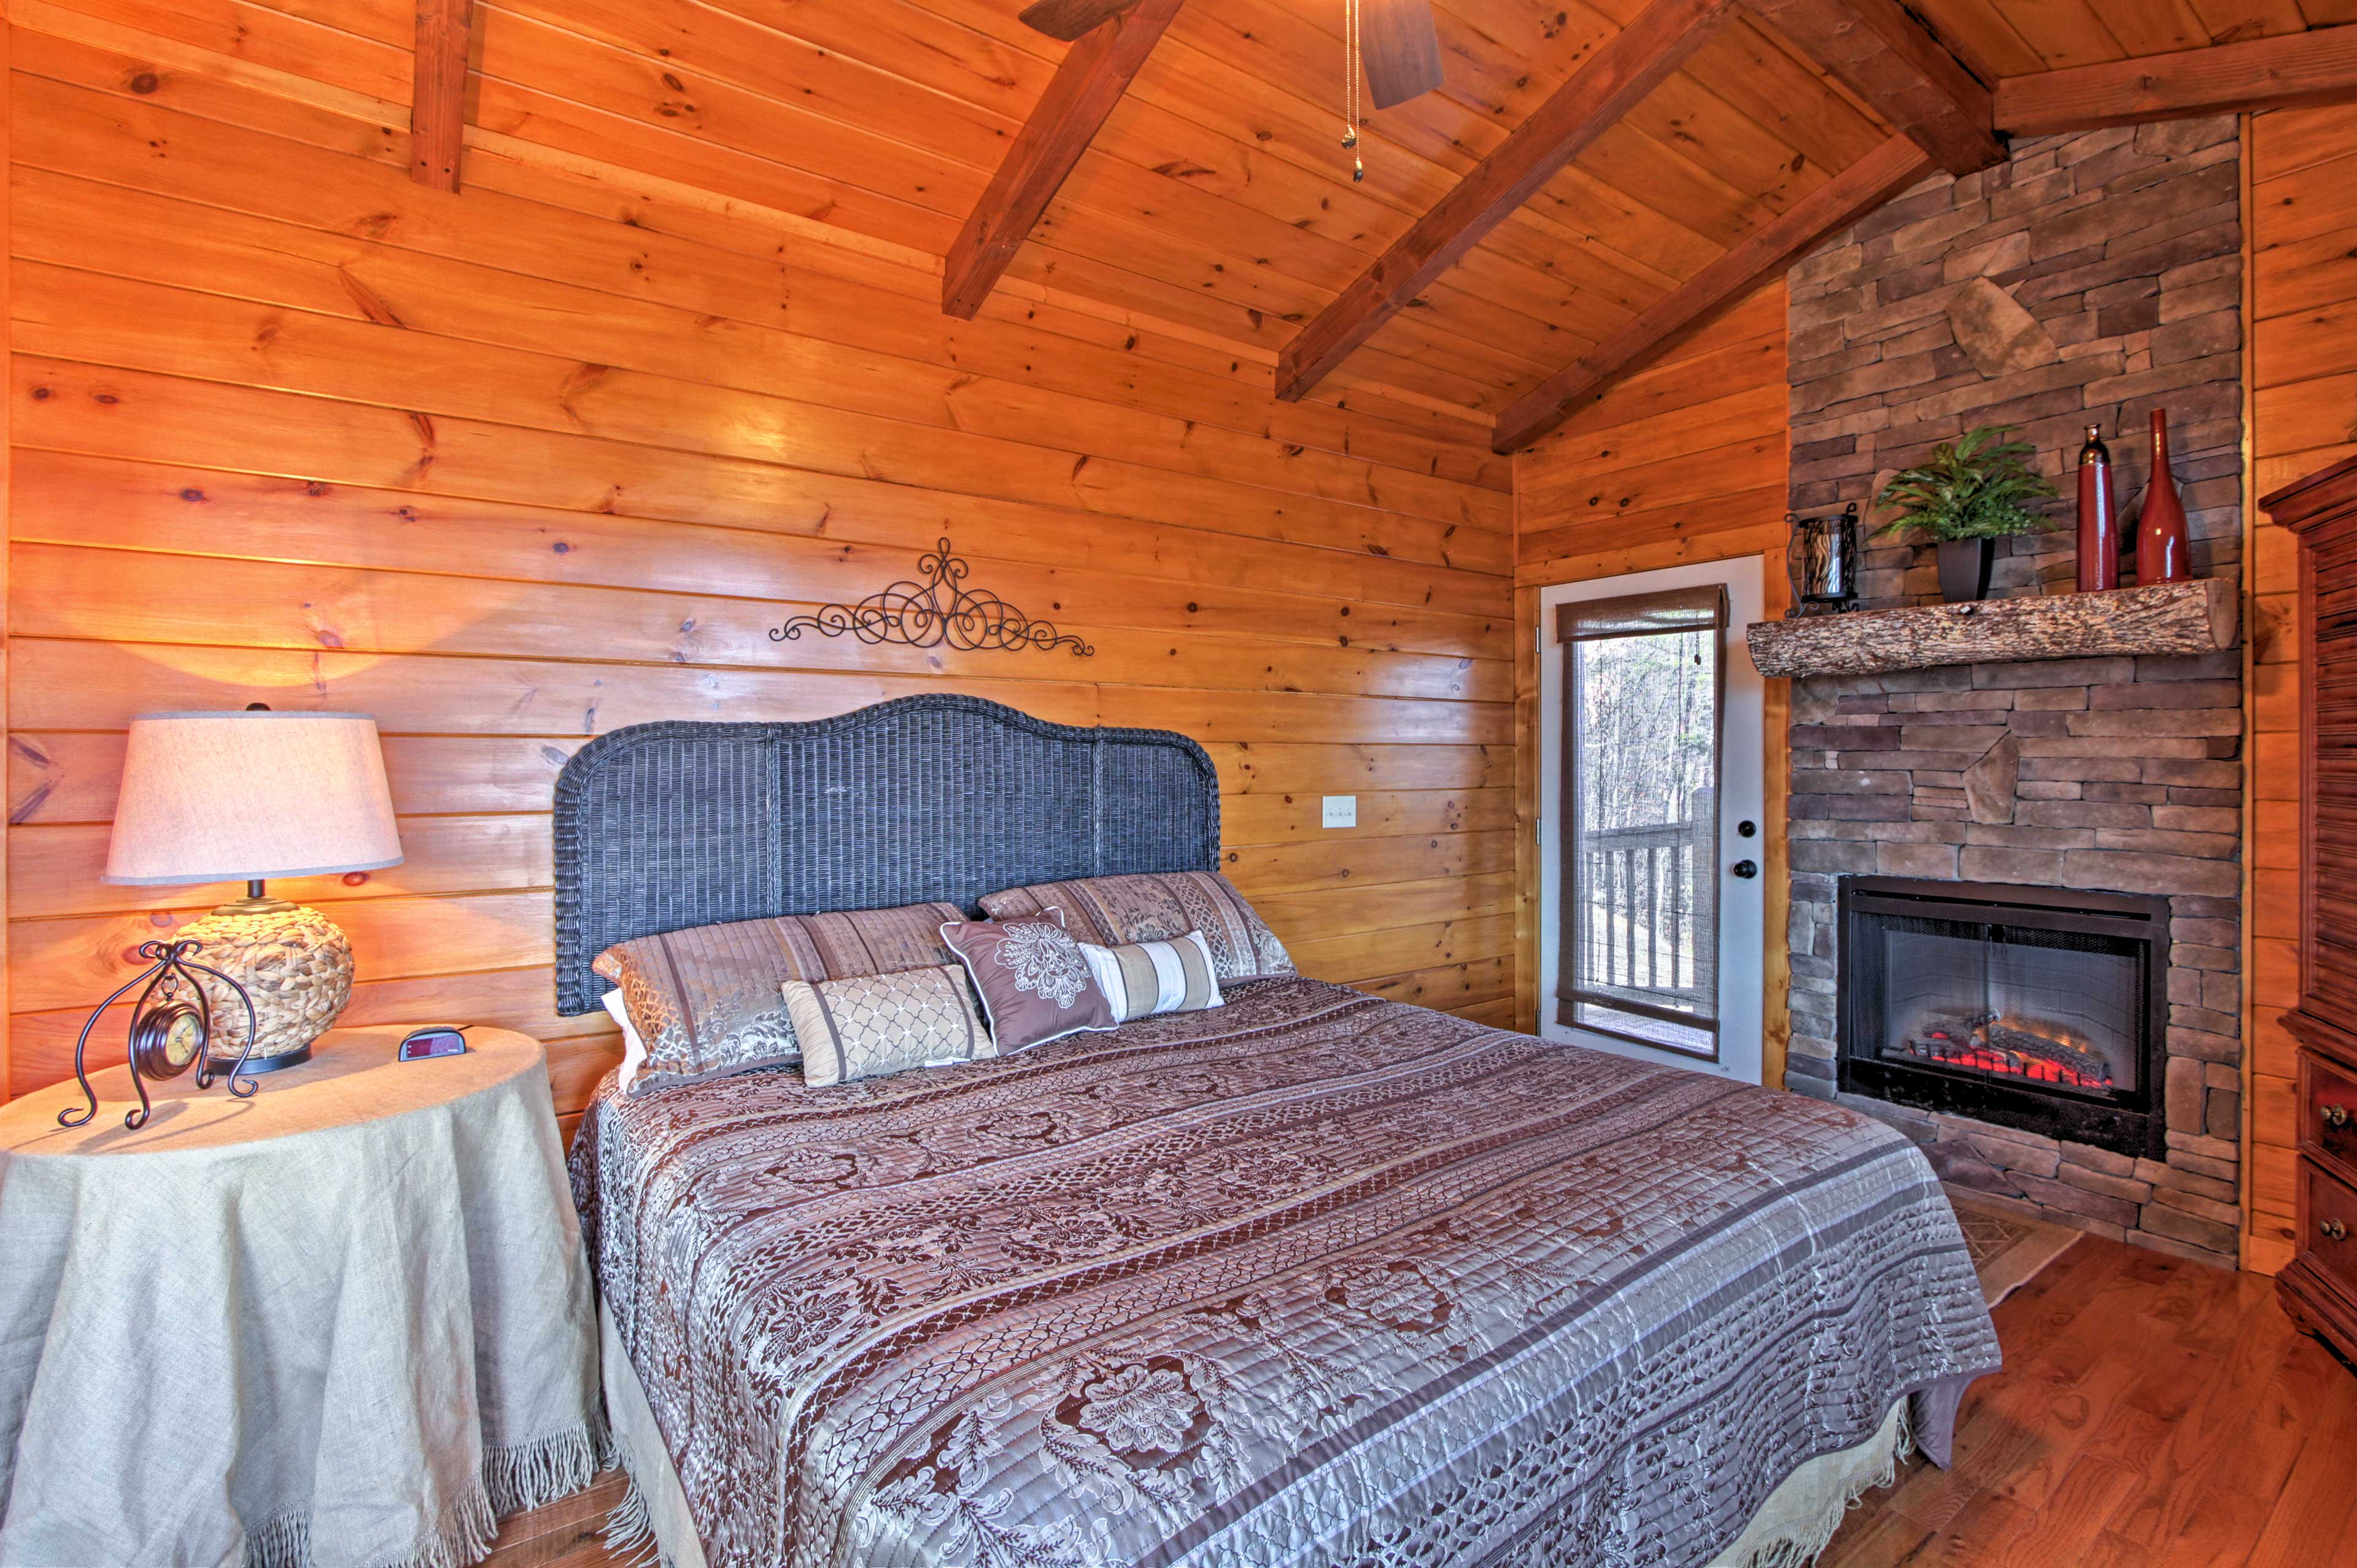 The first bedroom features a fireplace and large king bed.